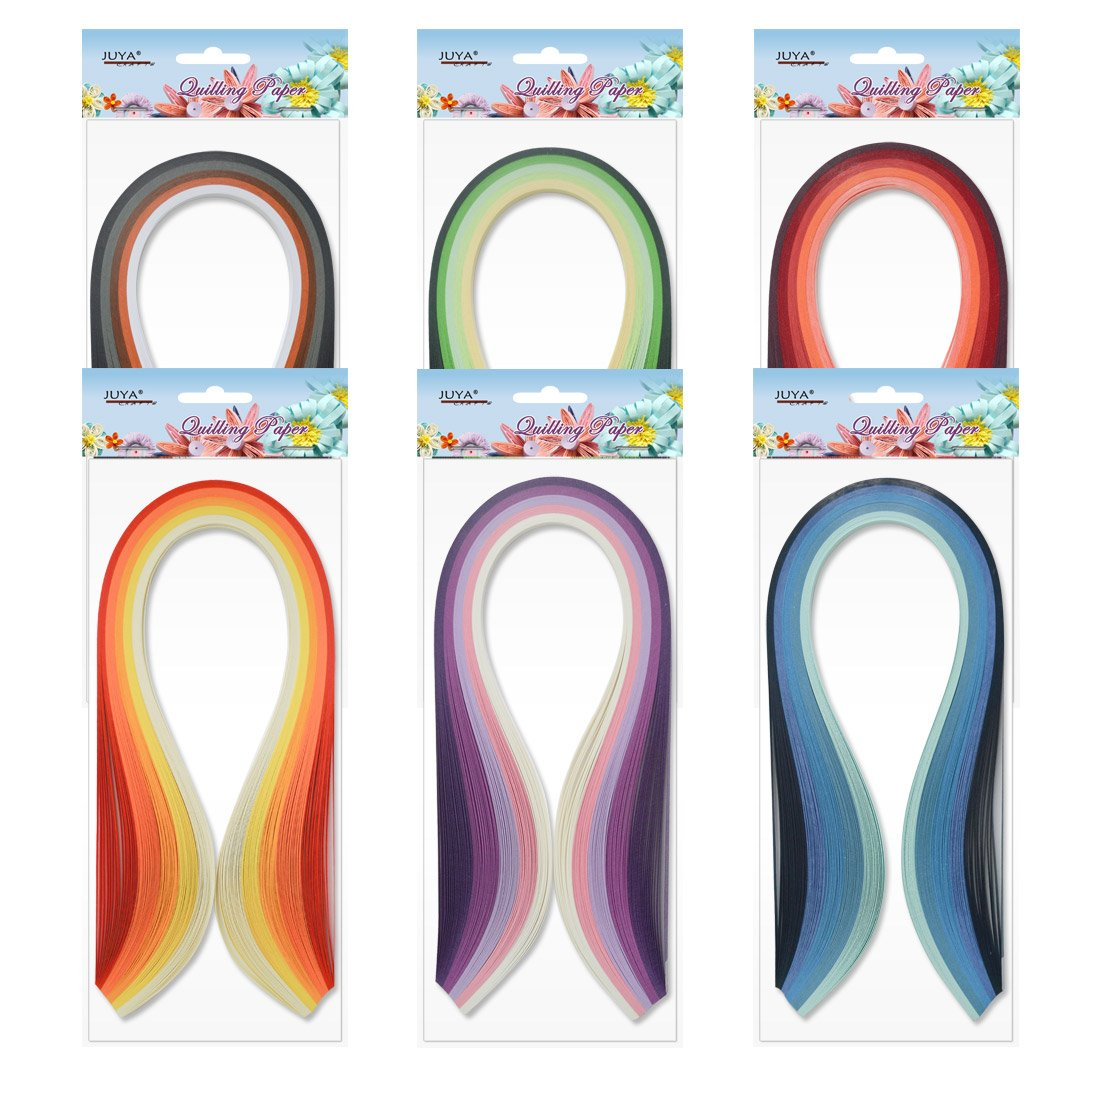 Width:5mm with Glue, Pink Tools Juya Paper Quilling Kits with 30 Colors 600 Strips and 8 Tools